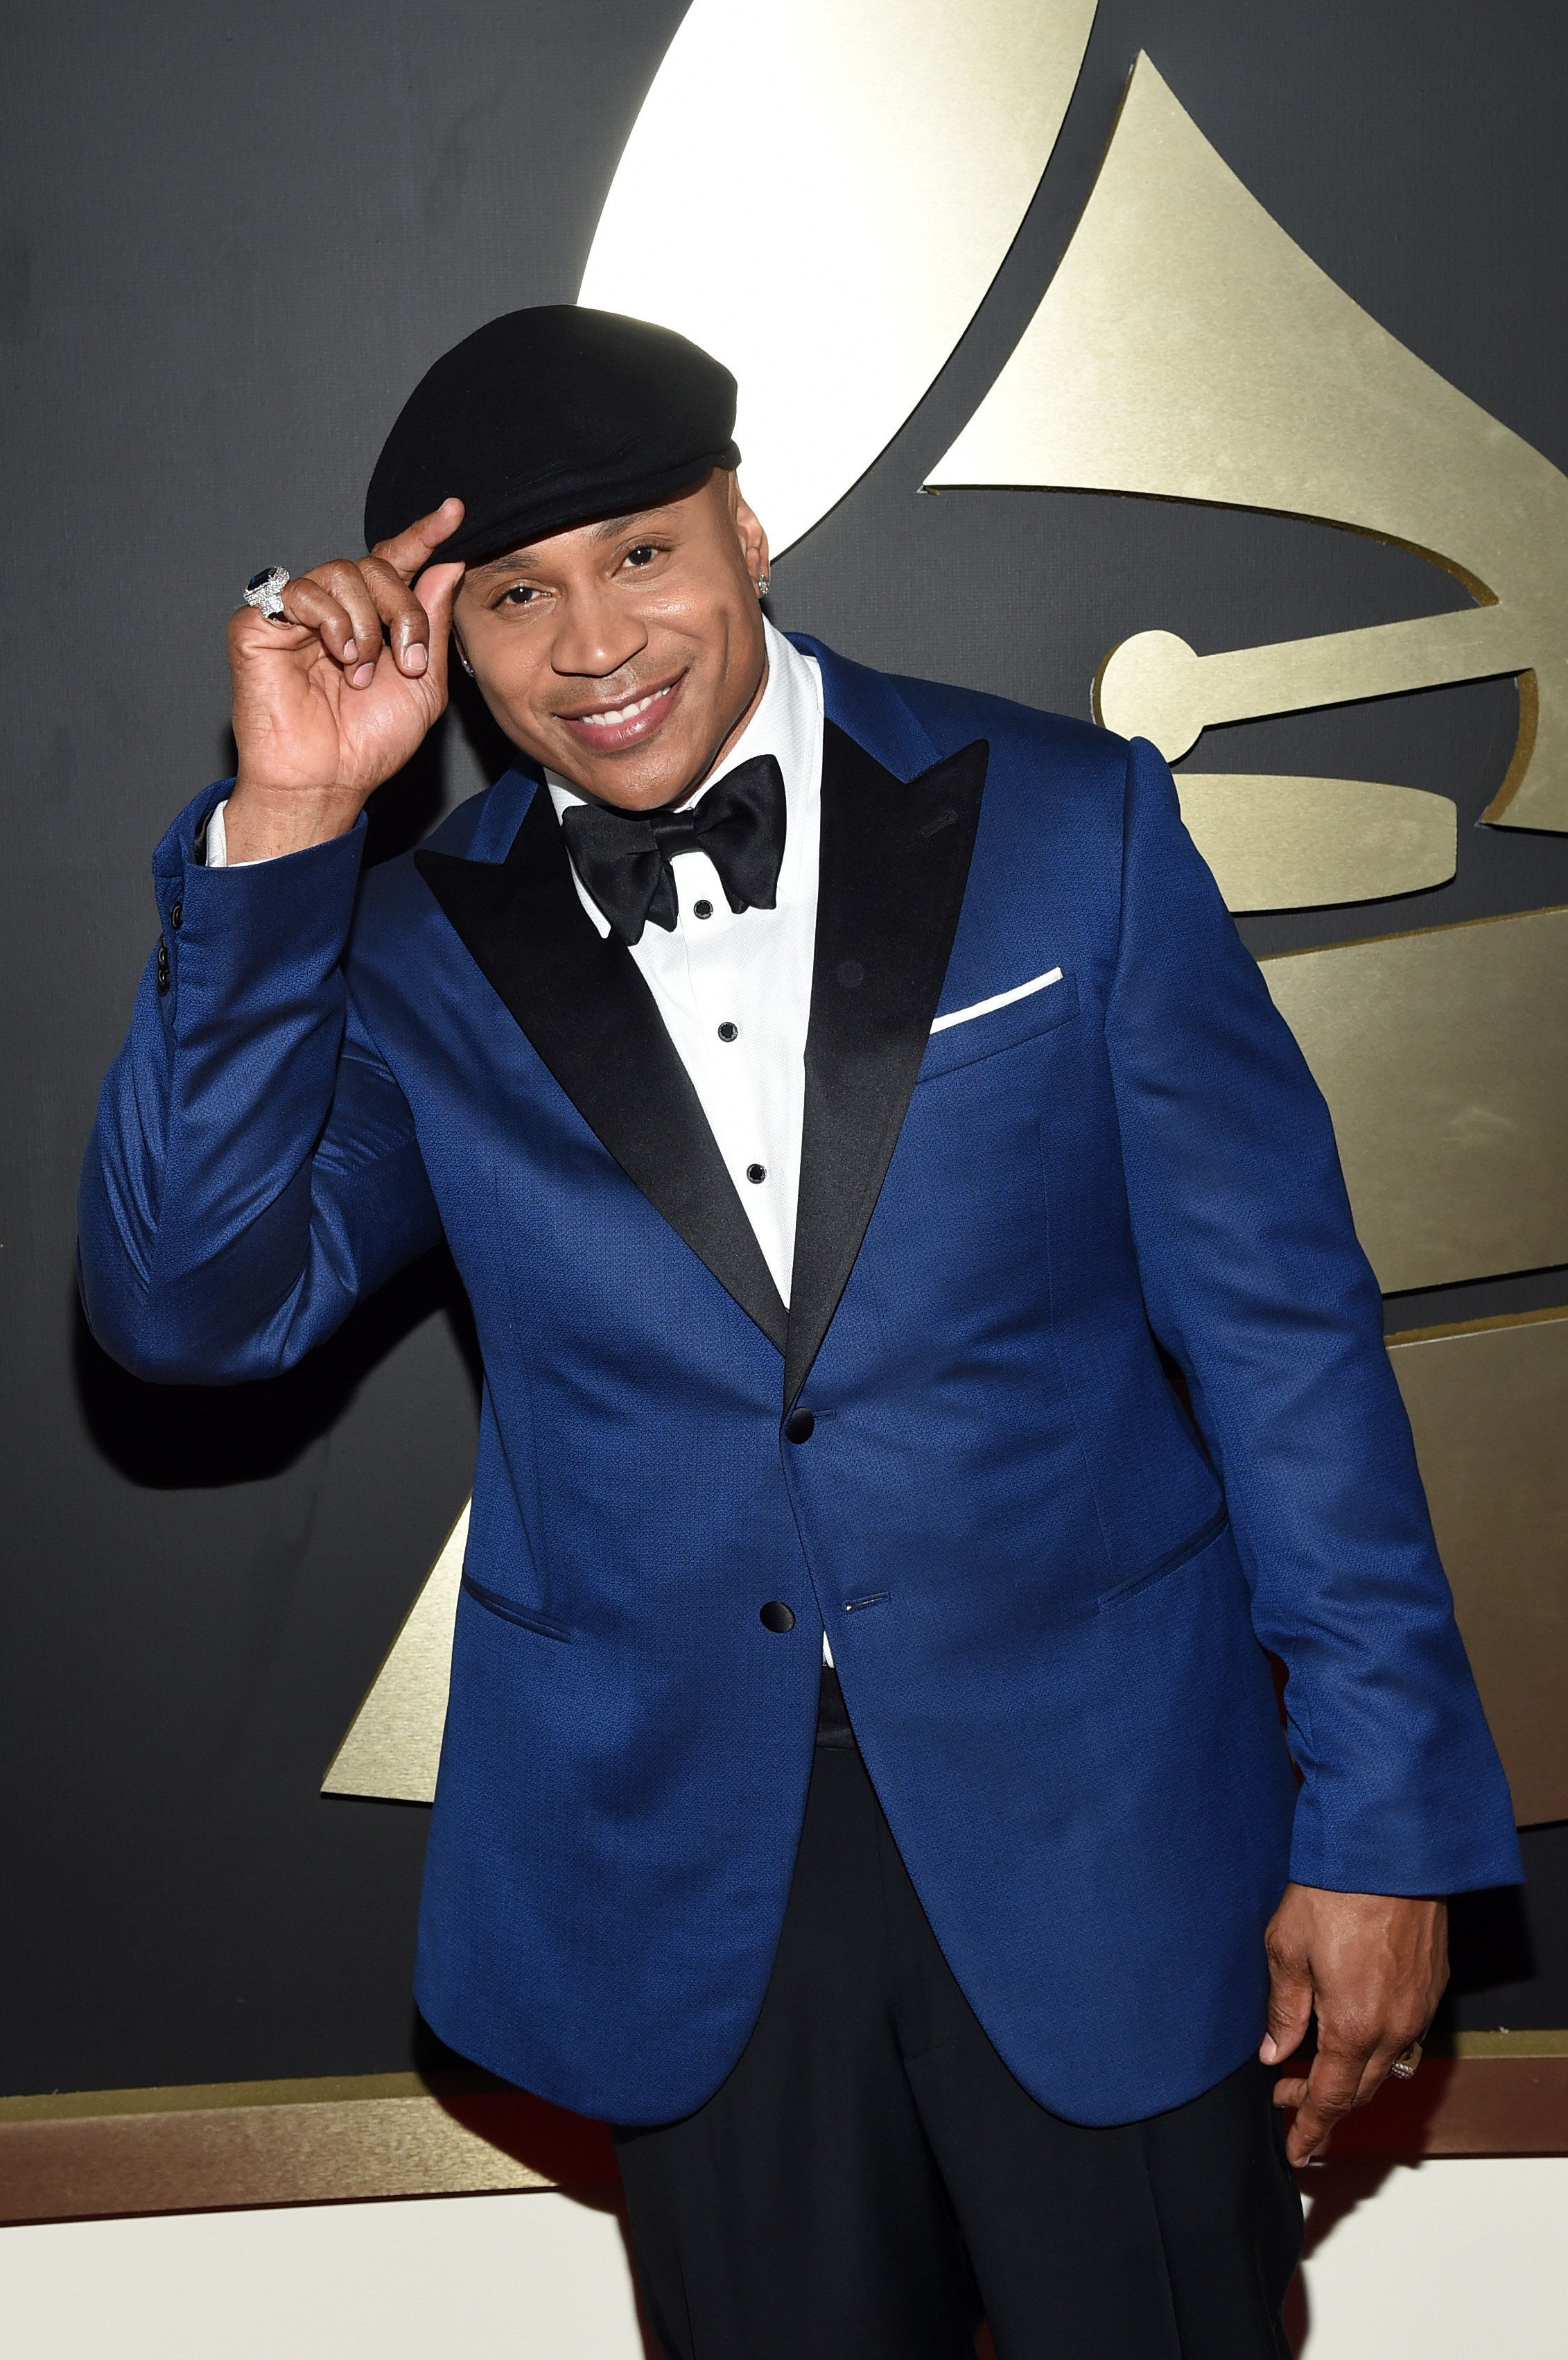 LL Cool J will host 58th Annual Grammy Awards on Feb. 15 for the fifth time in a row.